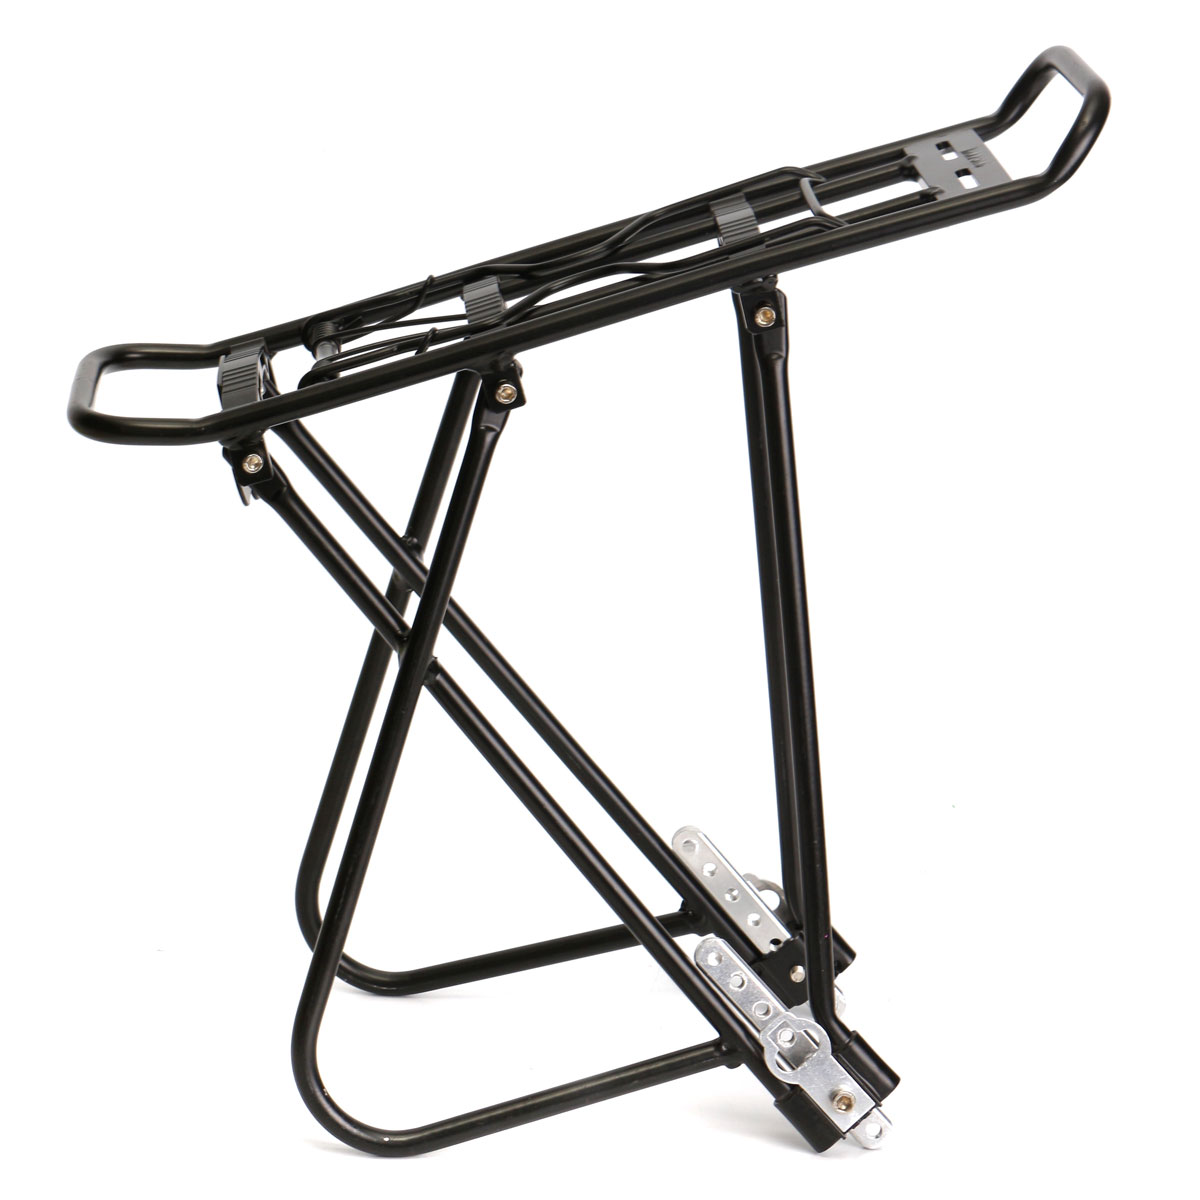 OUTERDO Aluminum Alloy MTB Road Bike Rear Rack 4 Point Adjustable Mounting System Bicycle Rear Rack Cycling Spring Clamp Racks